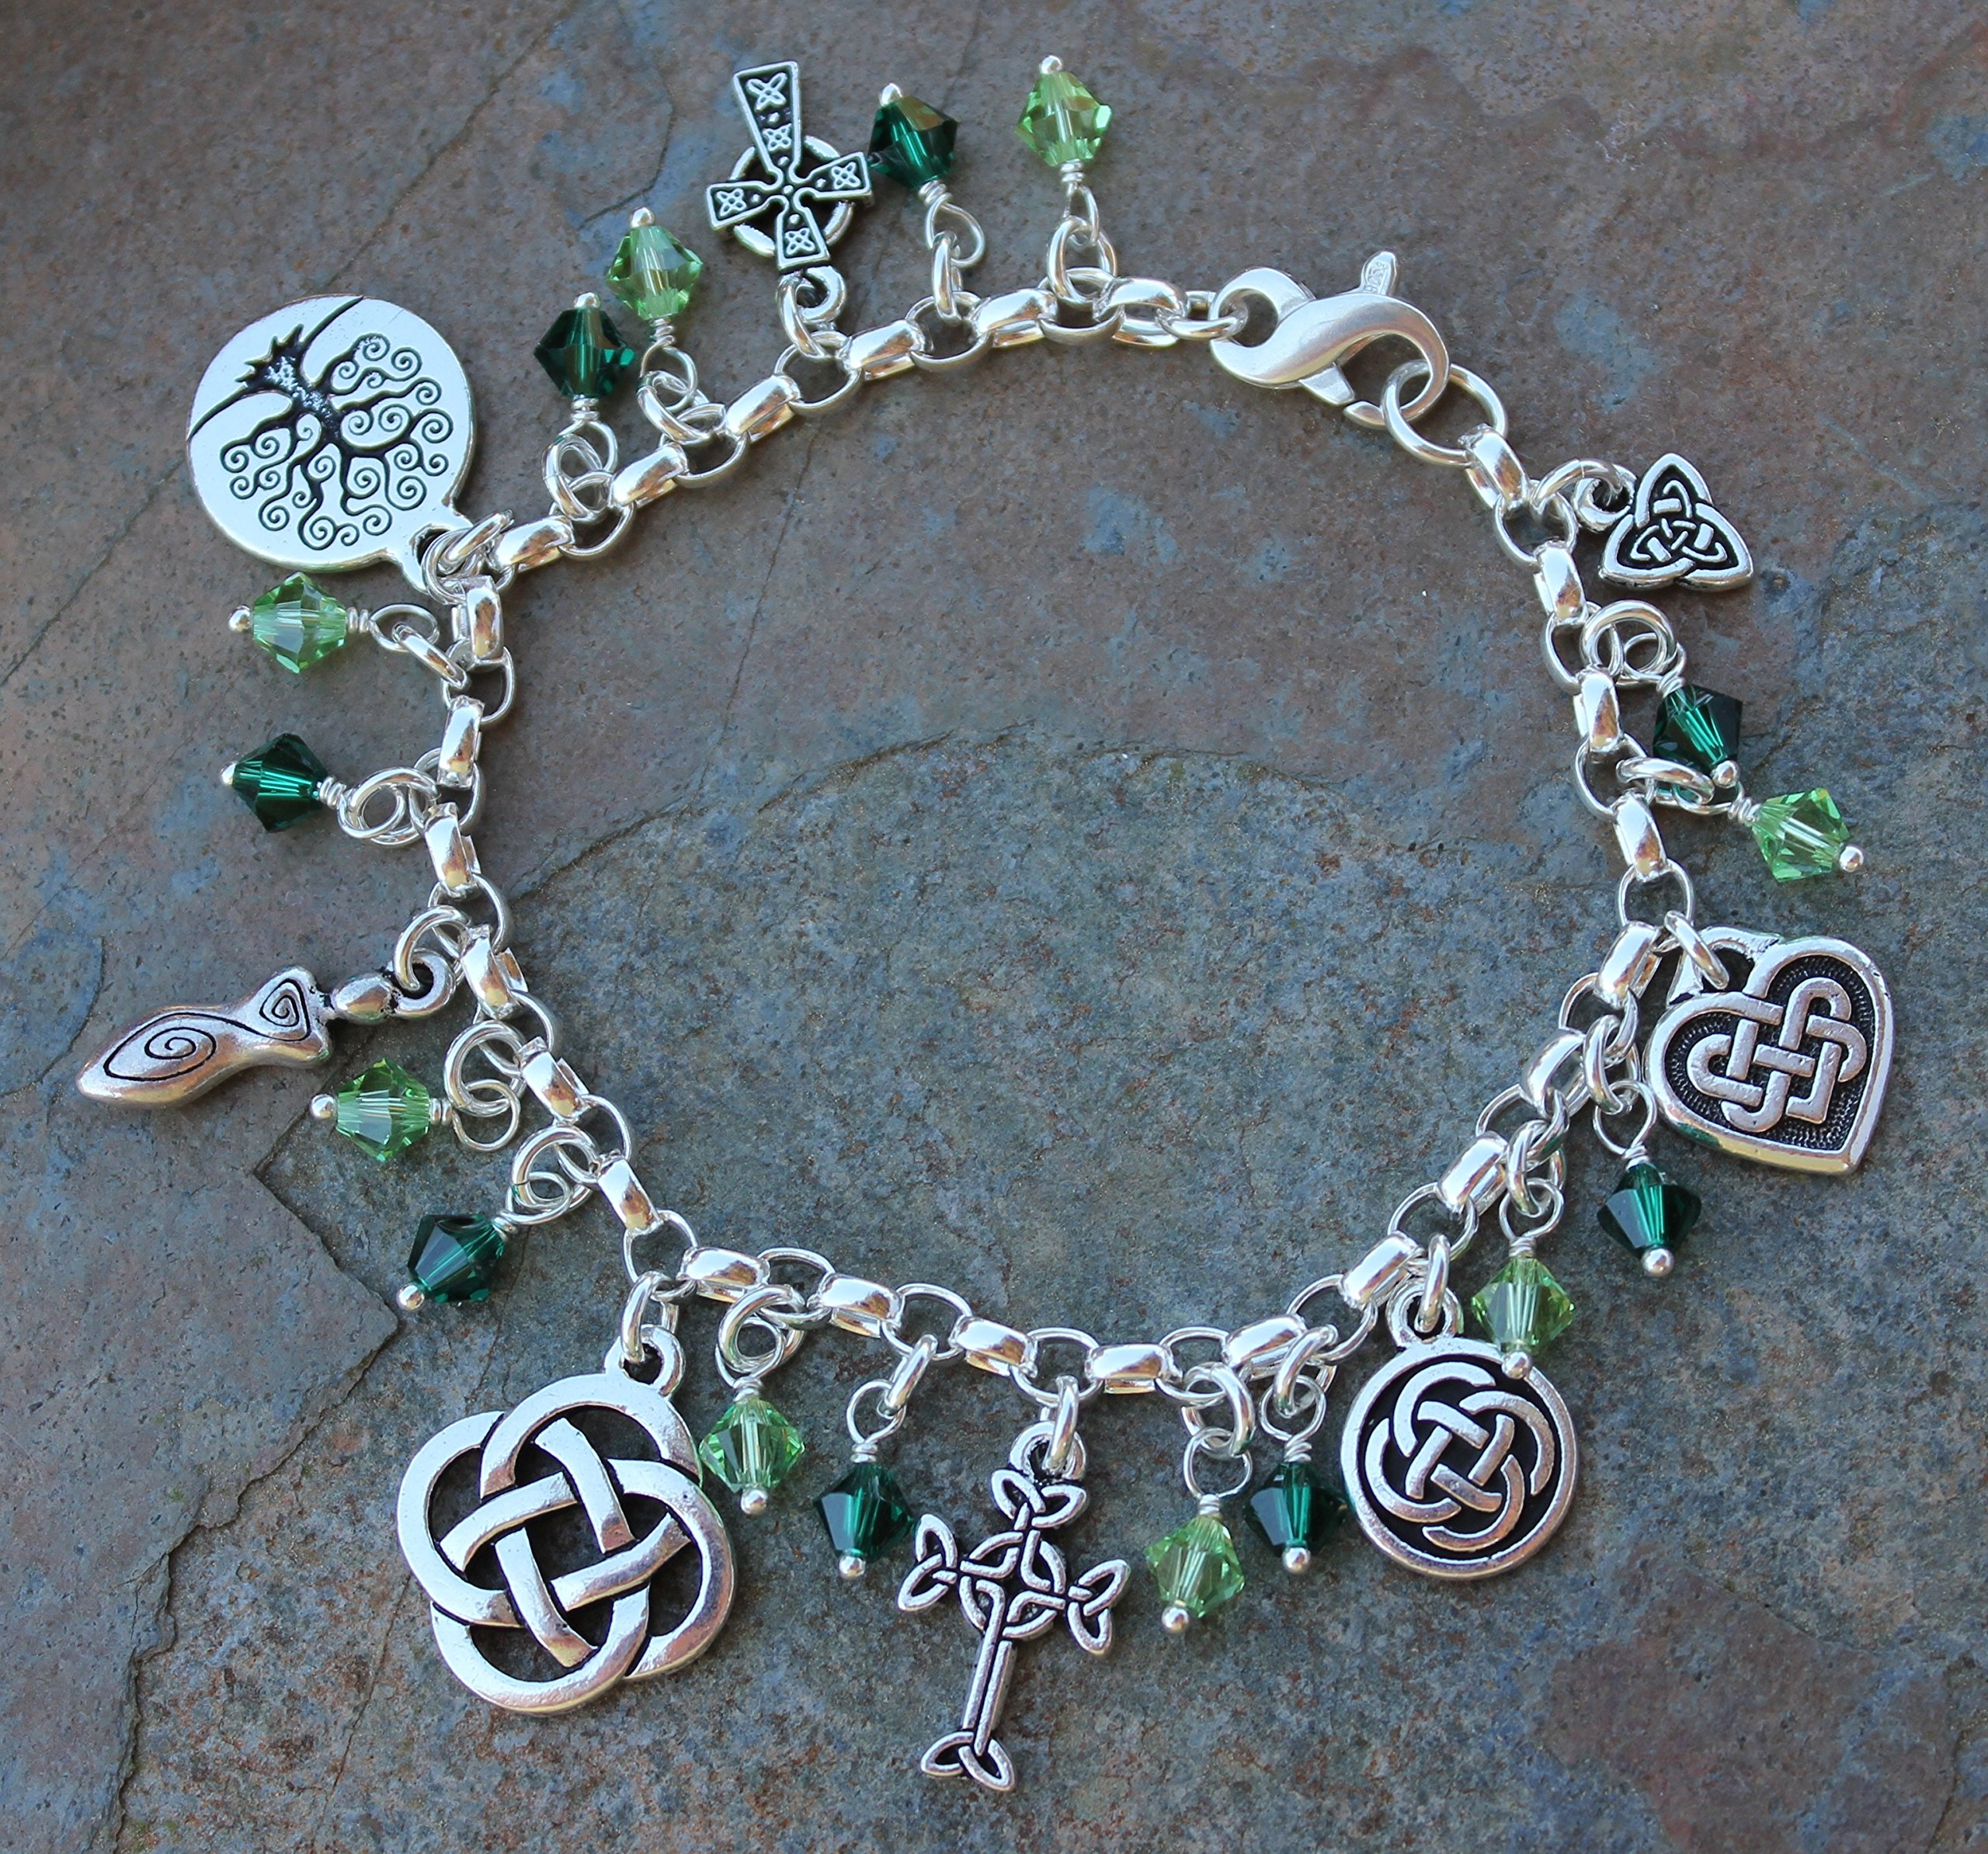 Silver Plated Deluxe Celtic Knots Charm Bracelet, Heavy Sterling Silver Chain, Green Crystals- Size XL (8.5 Inches (Extra Large)) by Night Owl Jewelry (Image #2)